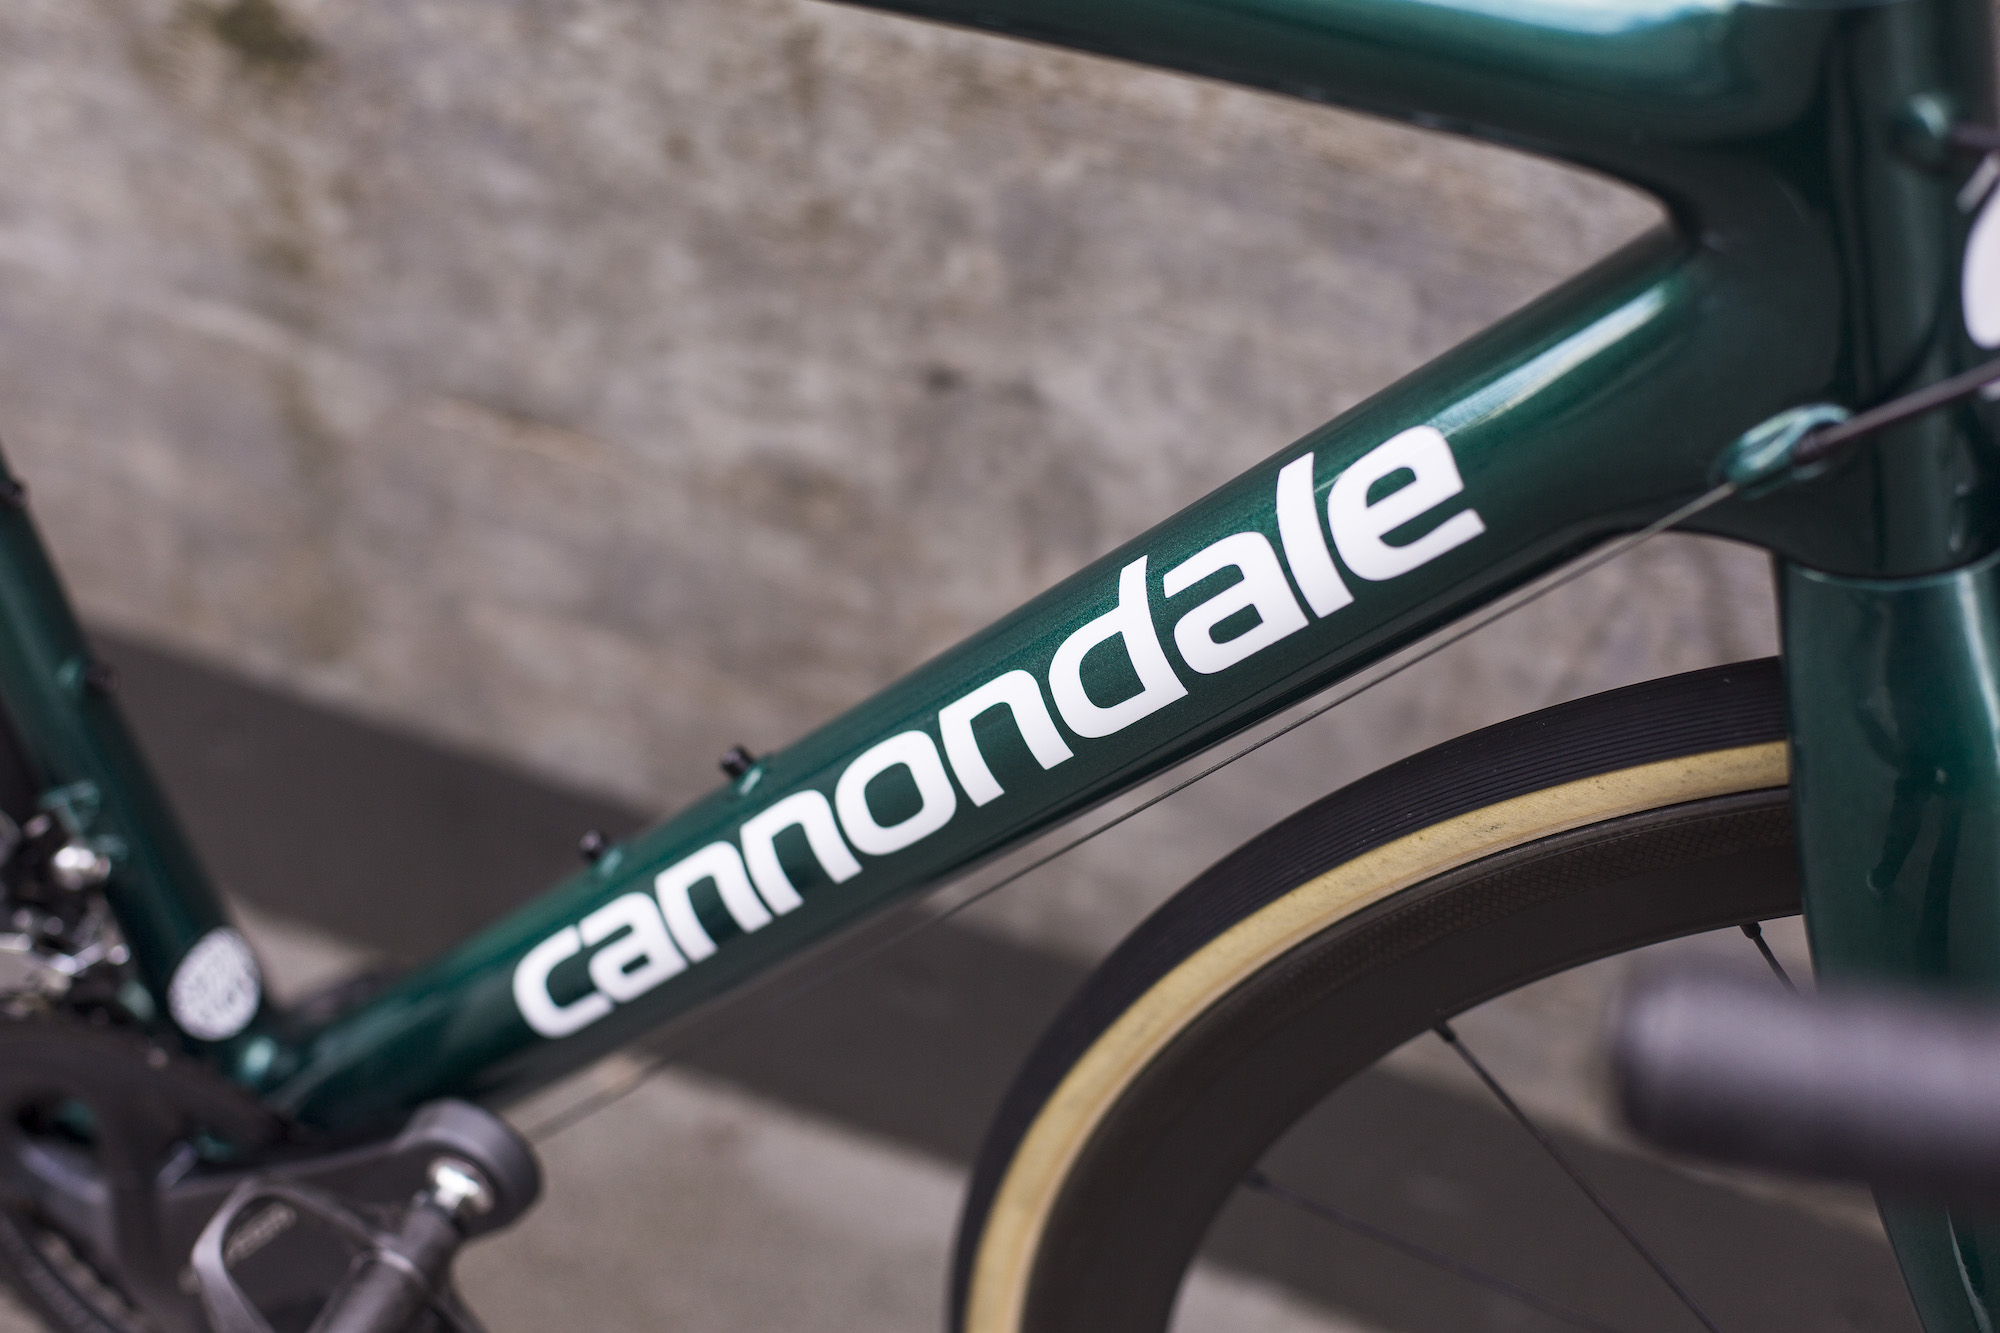 seabass-cycles-bikes-parts-instore-2-april-2019-cannondale-green-4284.jpg